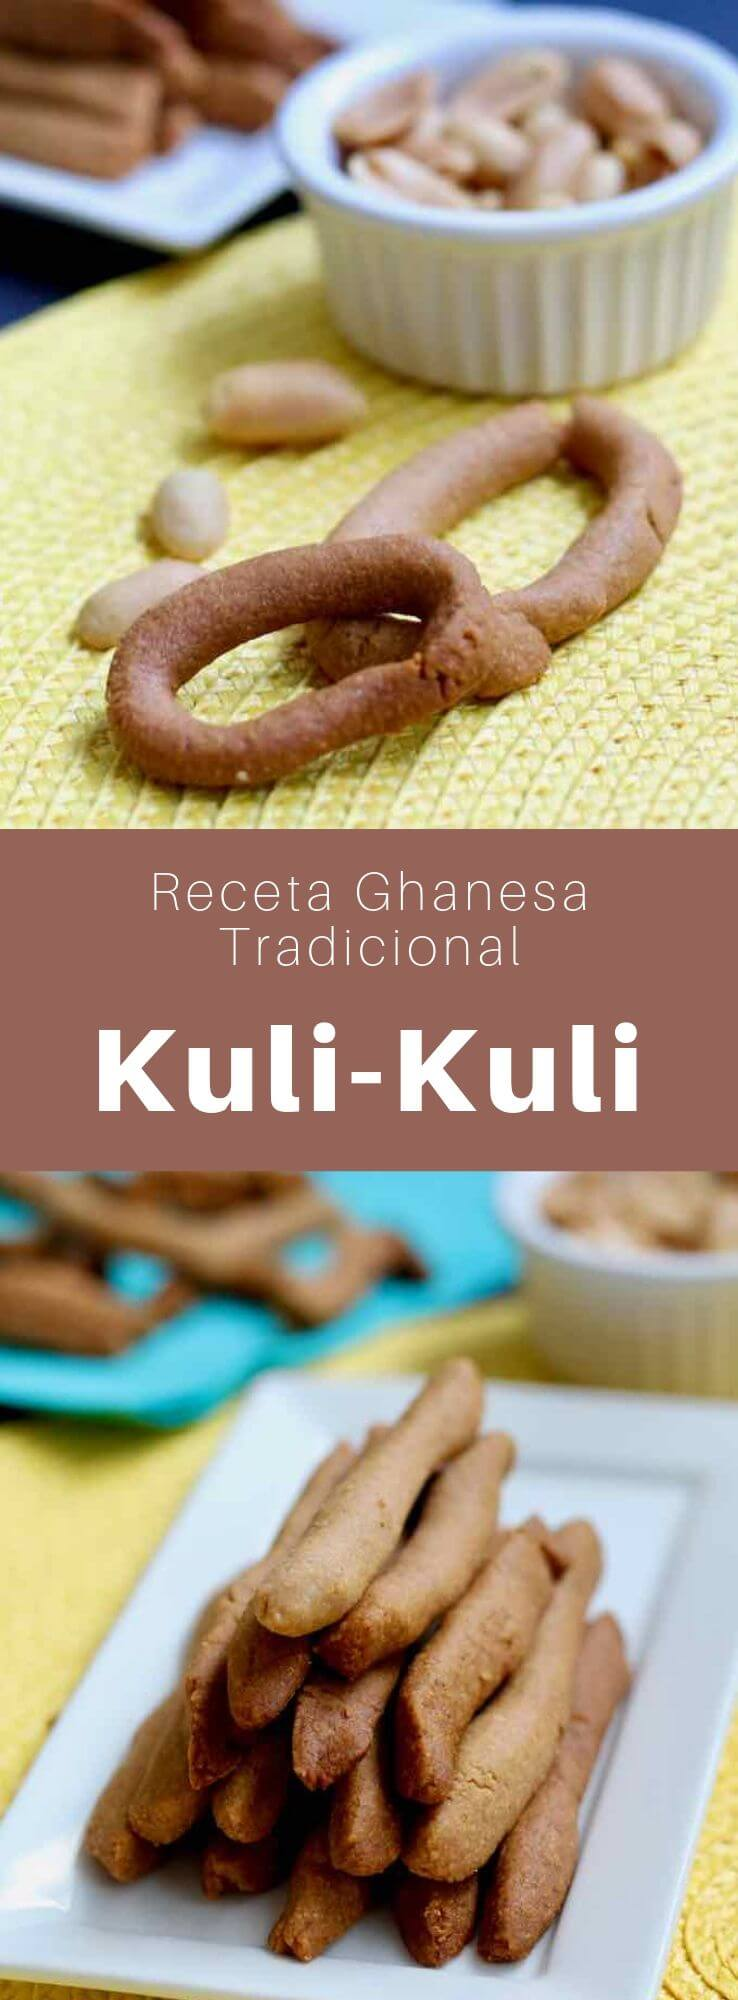 Kuli-kuli is a West African fried snack made with peanuts that is popular in Nigeria, Benin, northern Cameroon and Ghana. #Ghana #GhanaianCuisine #GhanaianFood #GhanaianRecipe #AfricanCuisine #AfricanFood #AfricanRecipe #WorldCuisine #196flavors